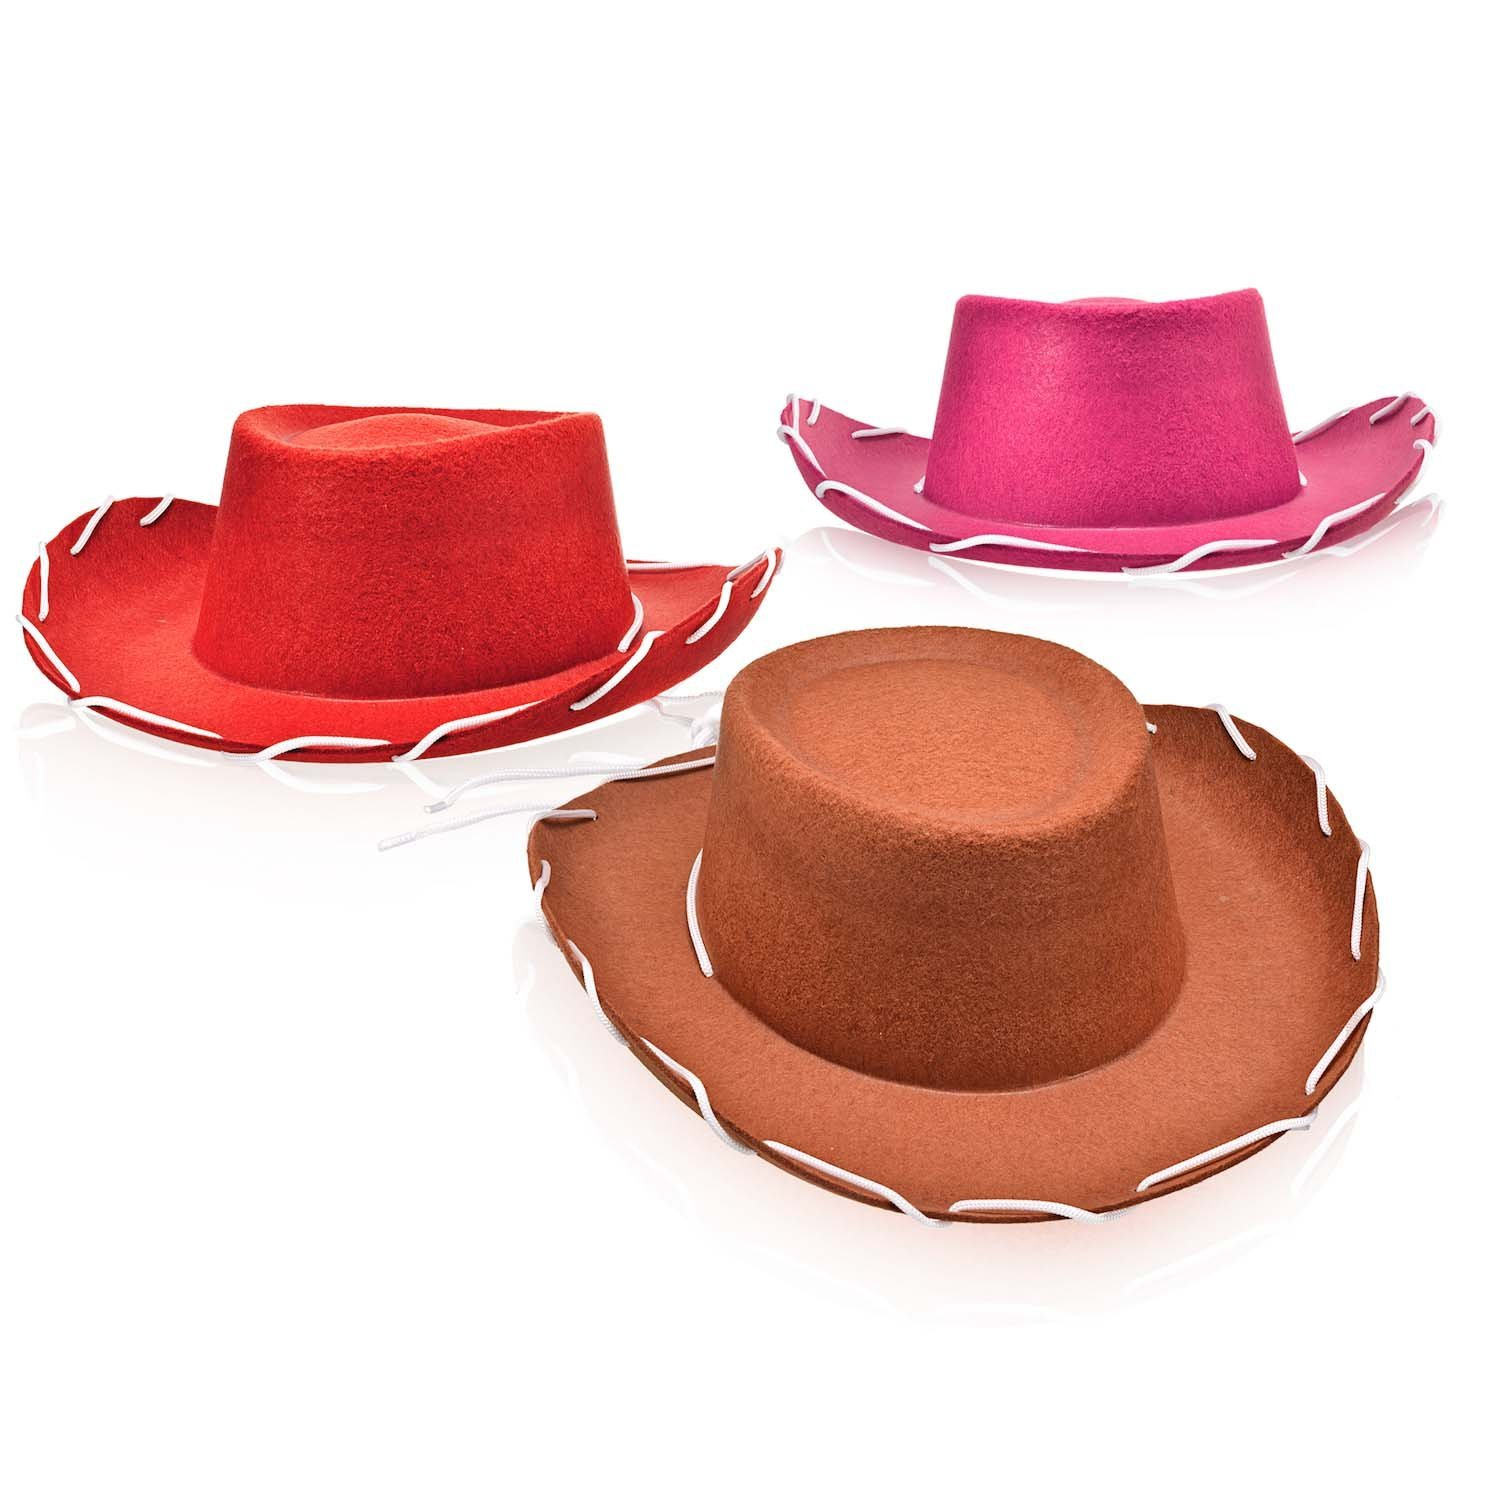 3 Children's Woody Felt Cowboy Hats in Pink, Red and Brown Western Stylefor Pretend Play by Bottles N Bags